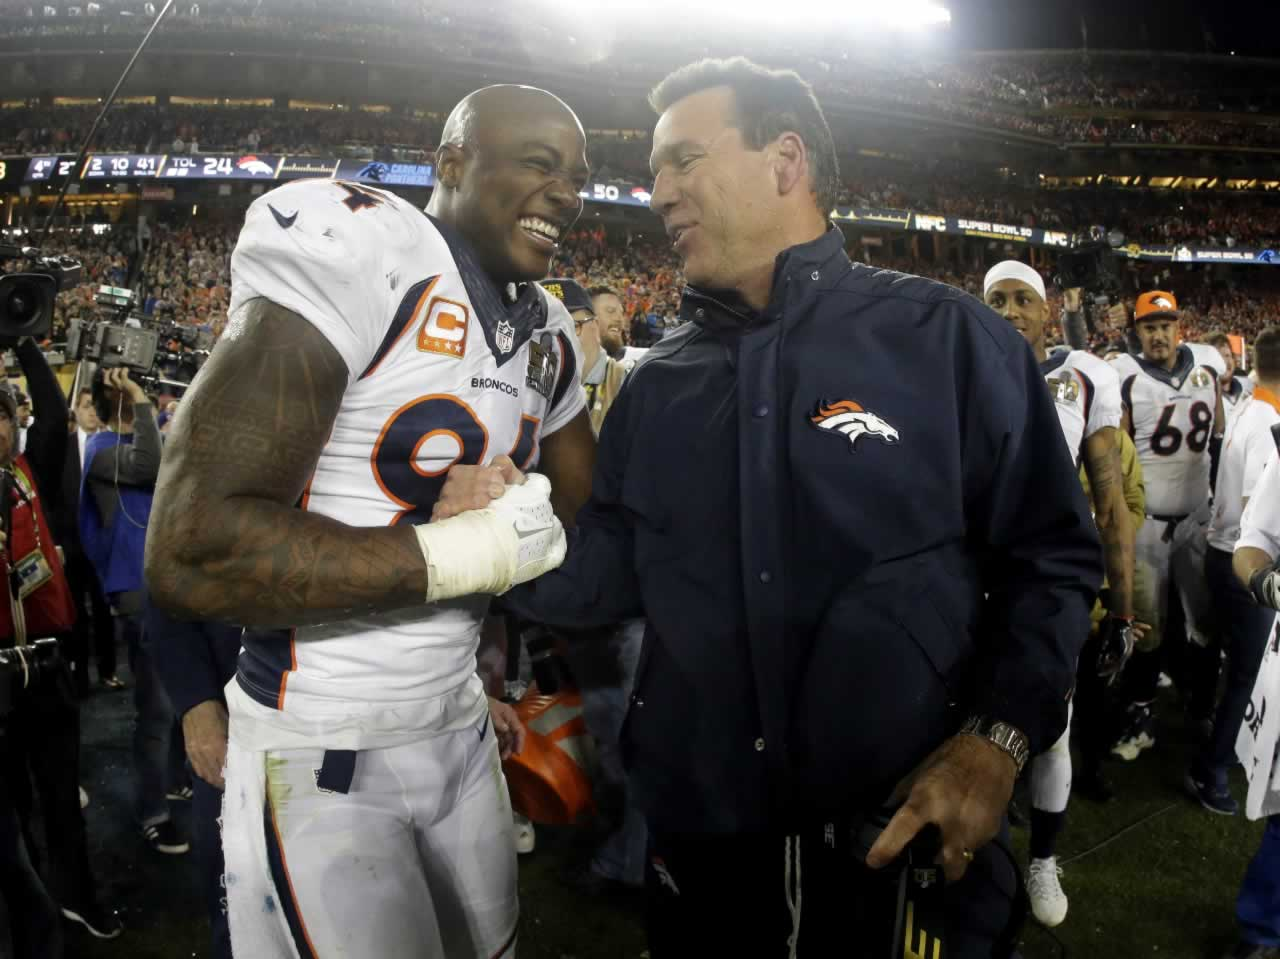 "<div class=""meta image-caption""><div class=""origin-logo origin-image none""><span>none</span></div><span class=""caption-text"">Broncos' DeMarcus Ware, head coach Gary Kubiak celebrate after their win against the Panthers in the NFL Super Bowl 50 football game Sunday, Feb. 7, 2016, in Santa Clara, Calif. (AP Photo/Julio Cortez)</span></div>"